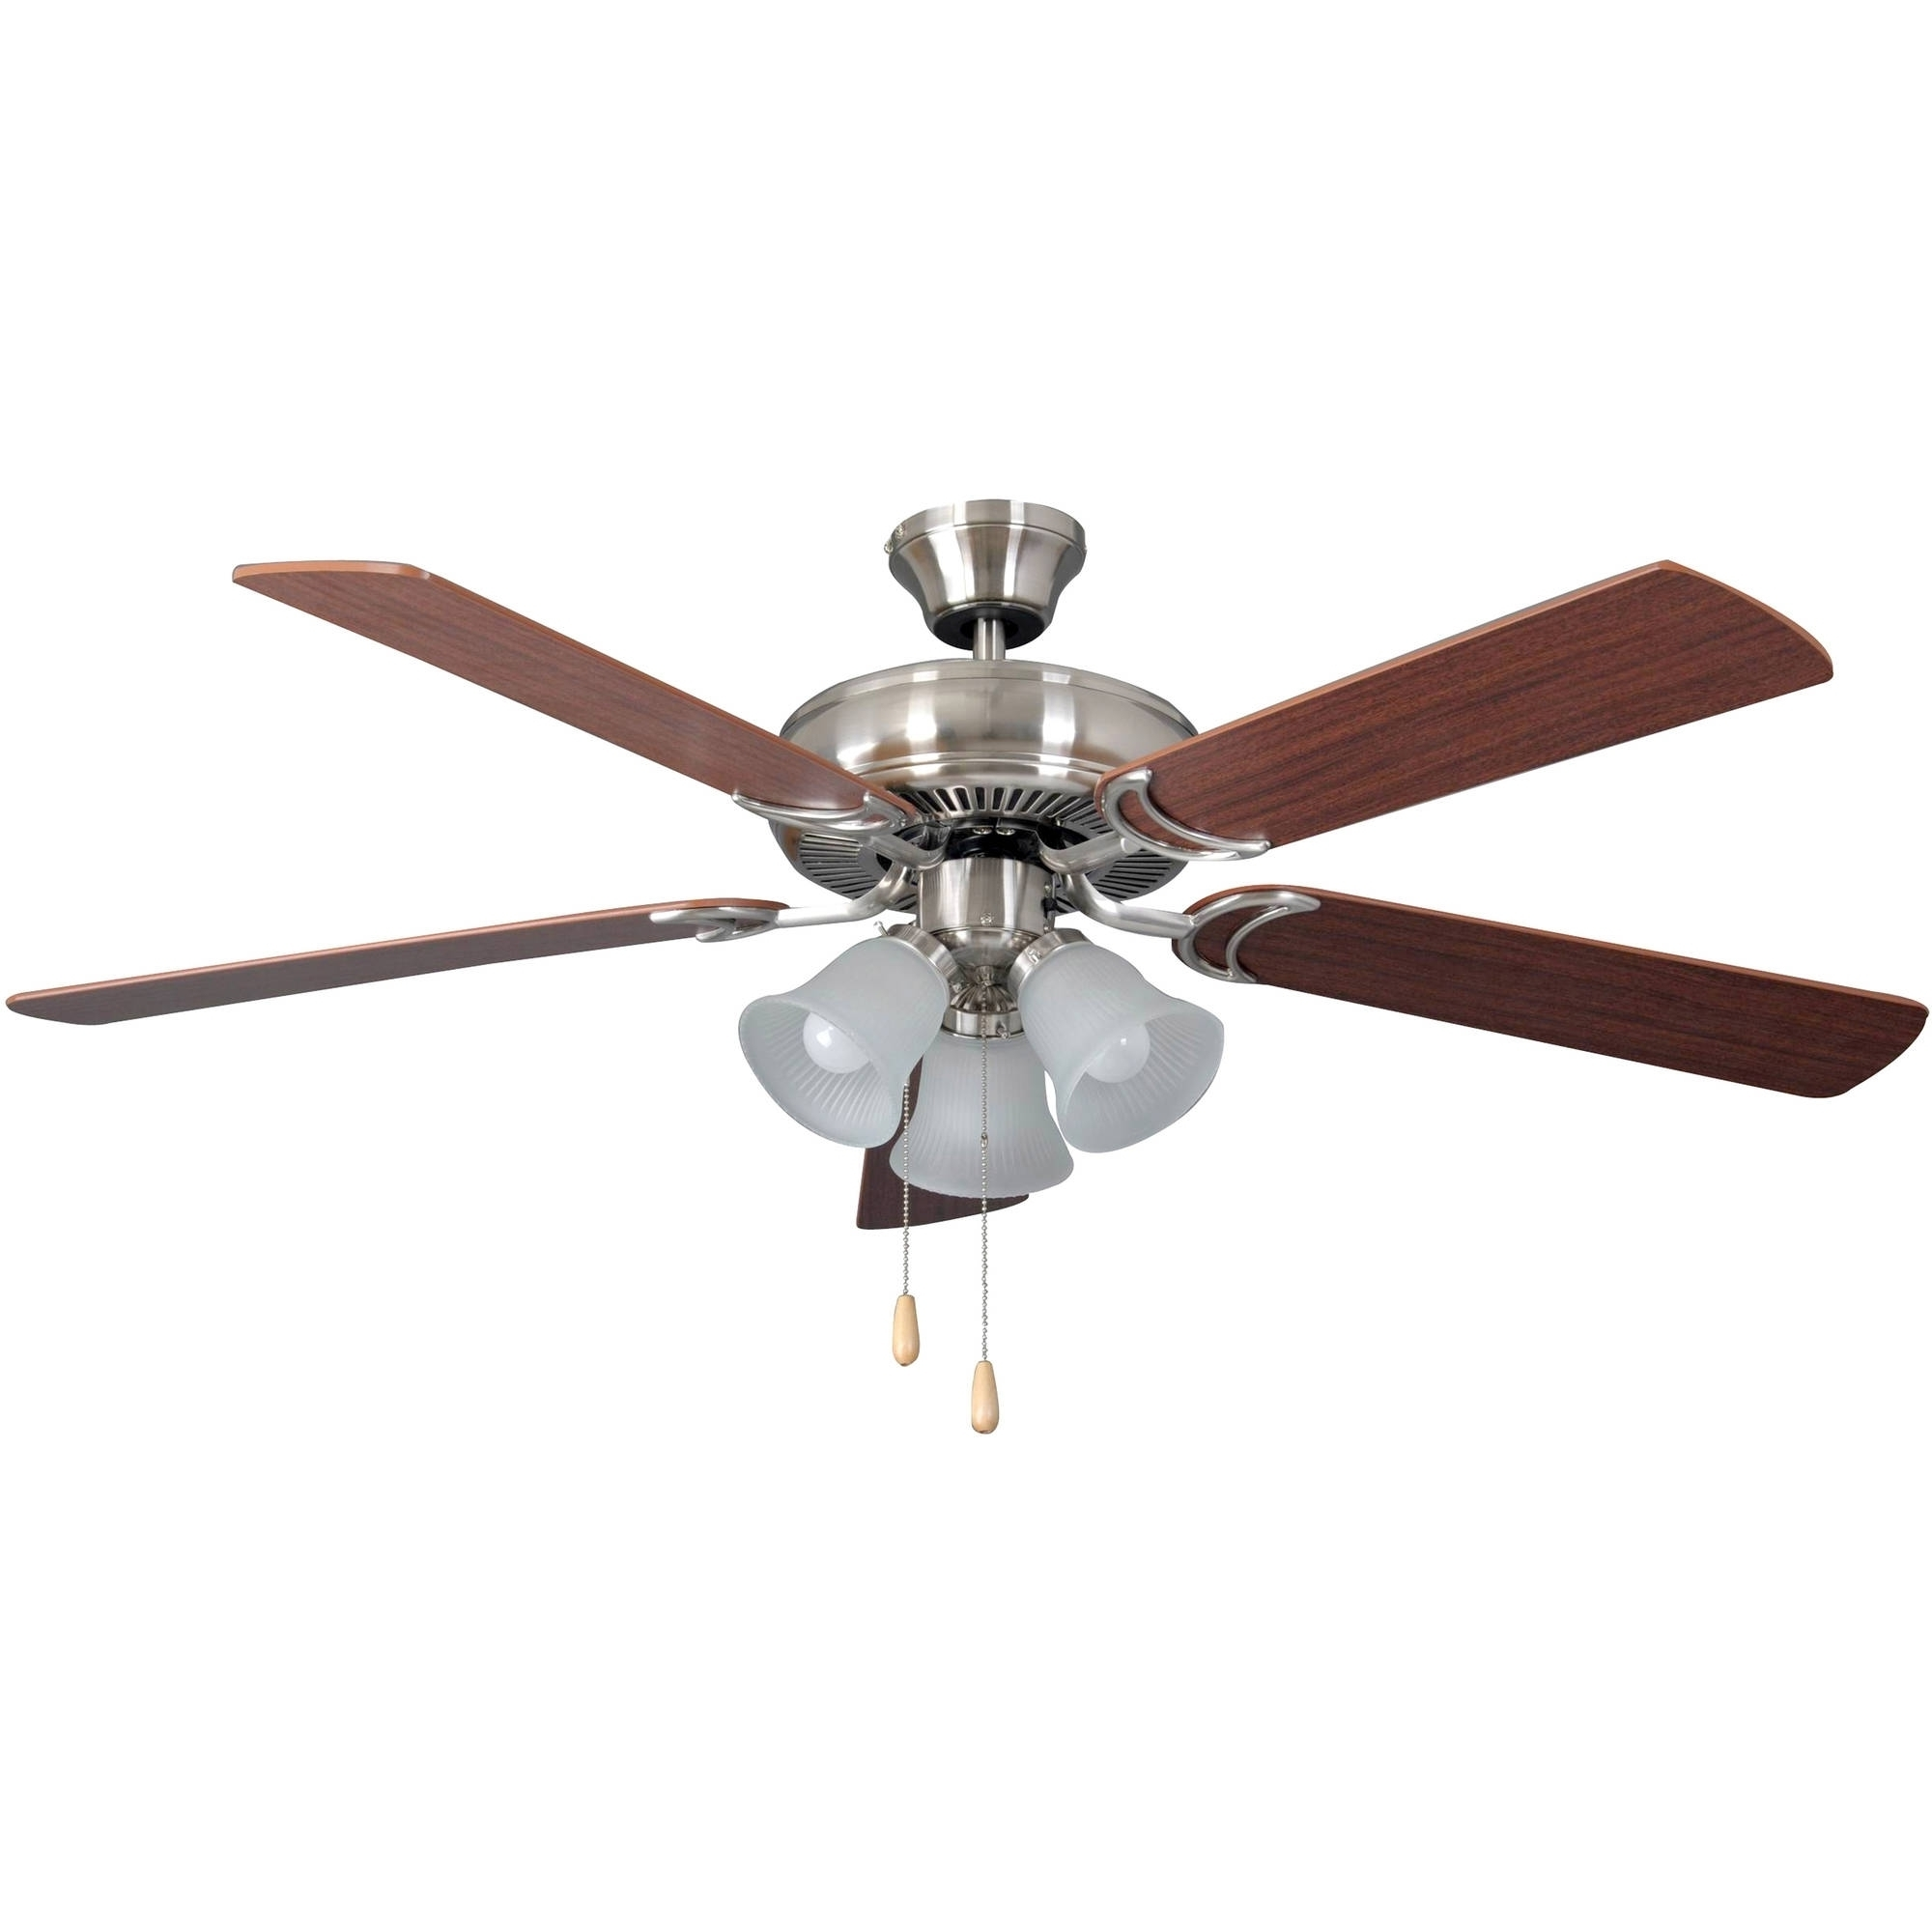 Outdoor Ceiling Fans With Lights At Walmart For Well Known Ceiling Fans With Lights : 85 Amusing Bedroom Uk' Home Depot' For Ands (View 14 of 20)